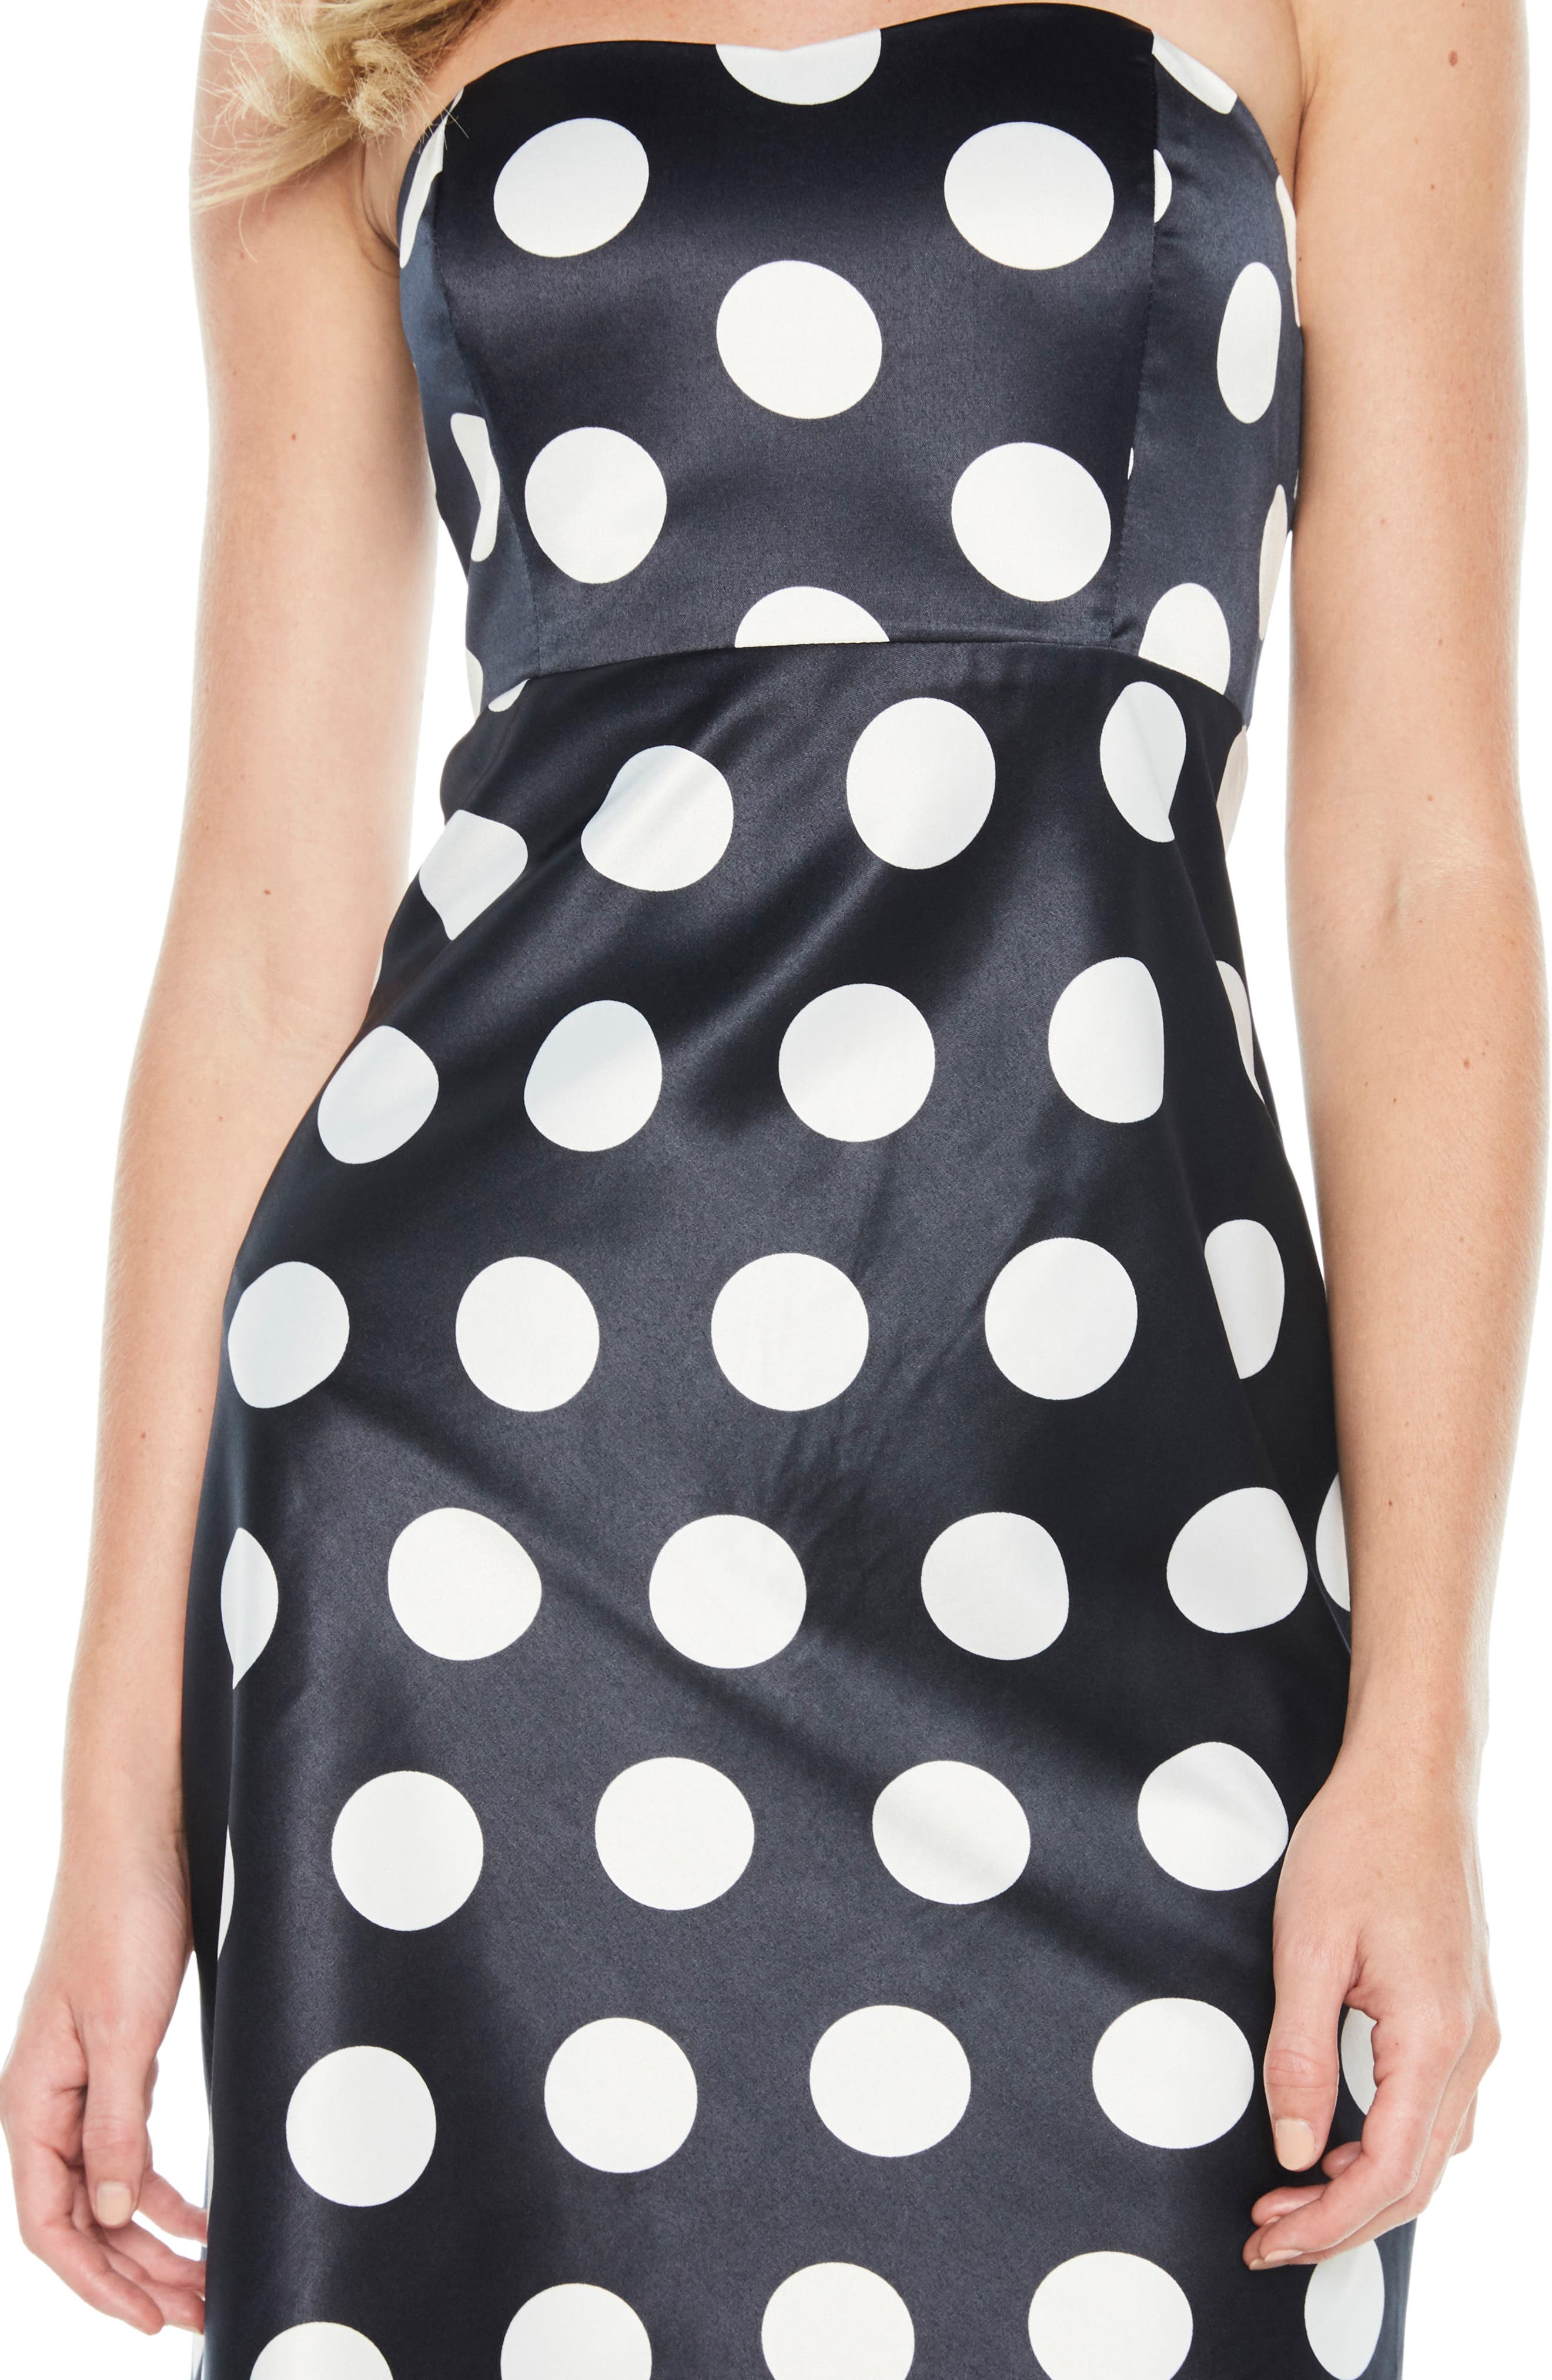 Sayer Dotted Tie Back Strapless Dress,                             Alternate thumbnail 4, color,                             Navy Spot